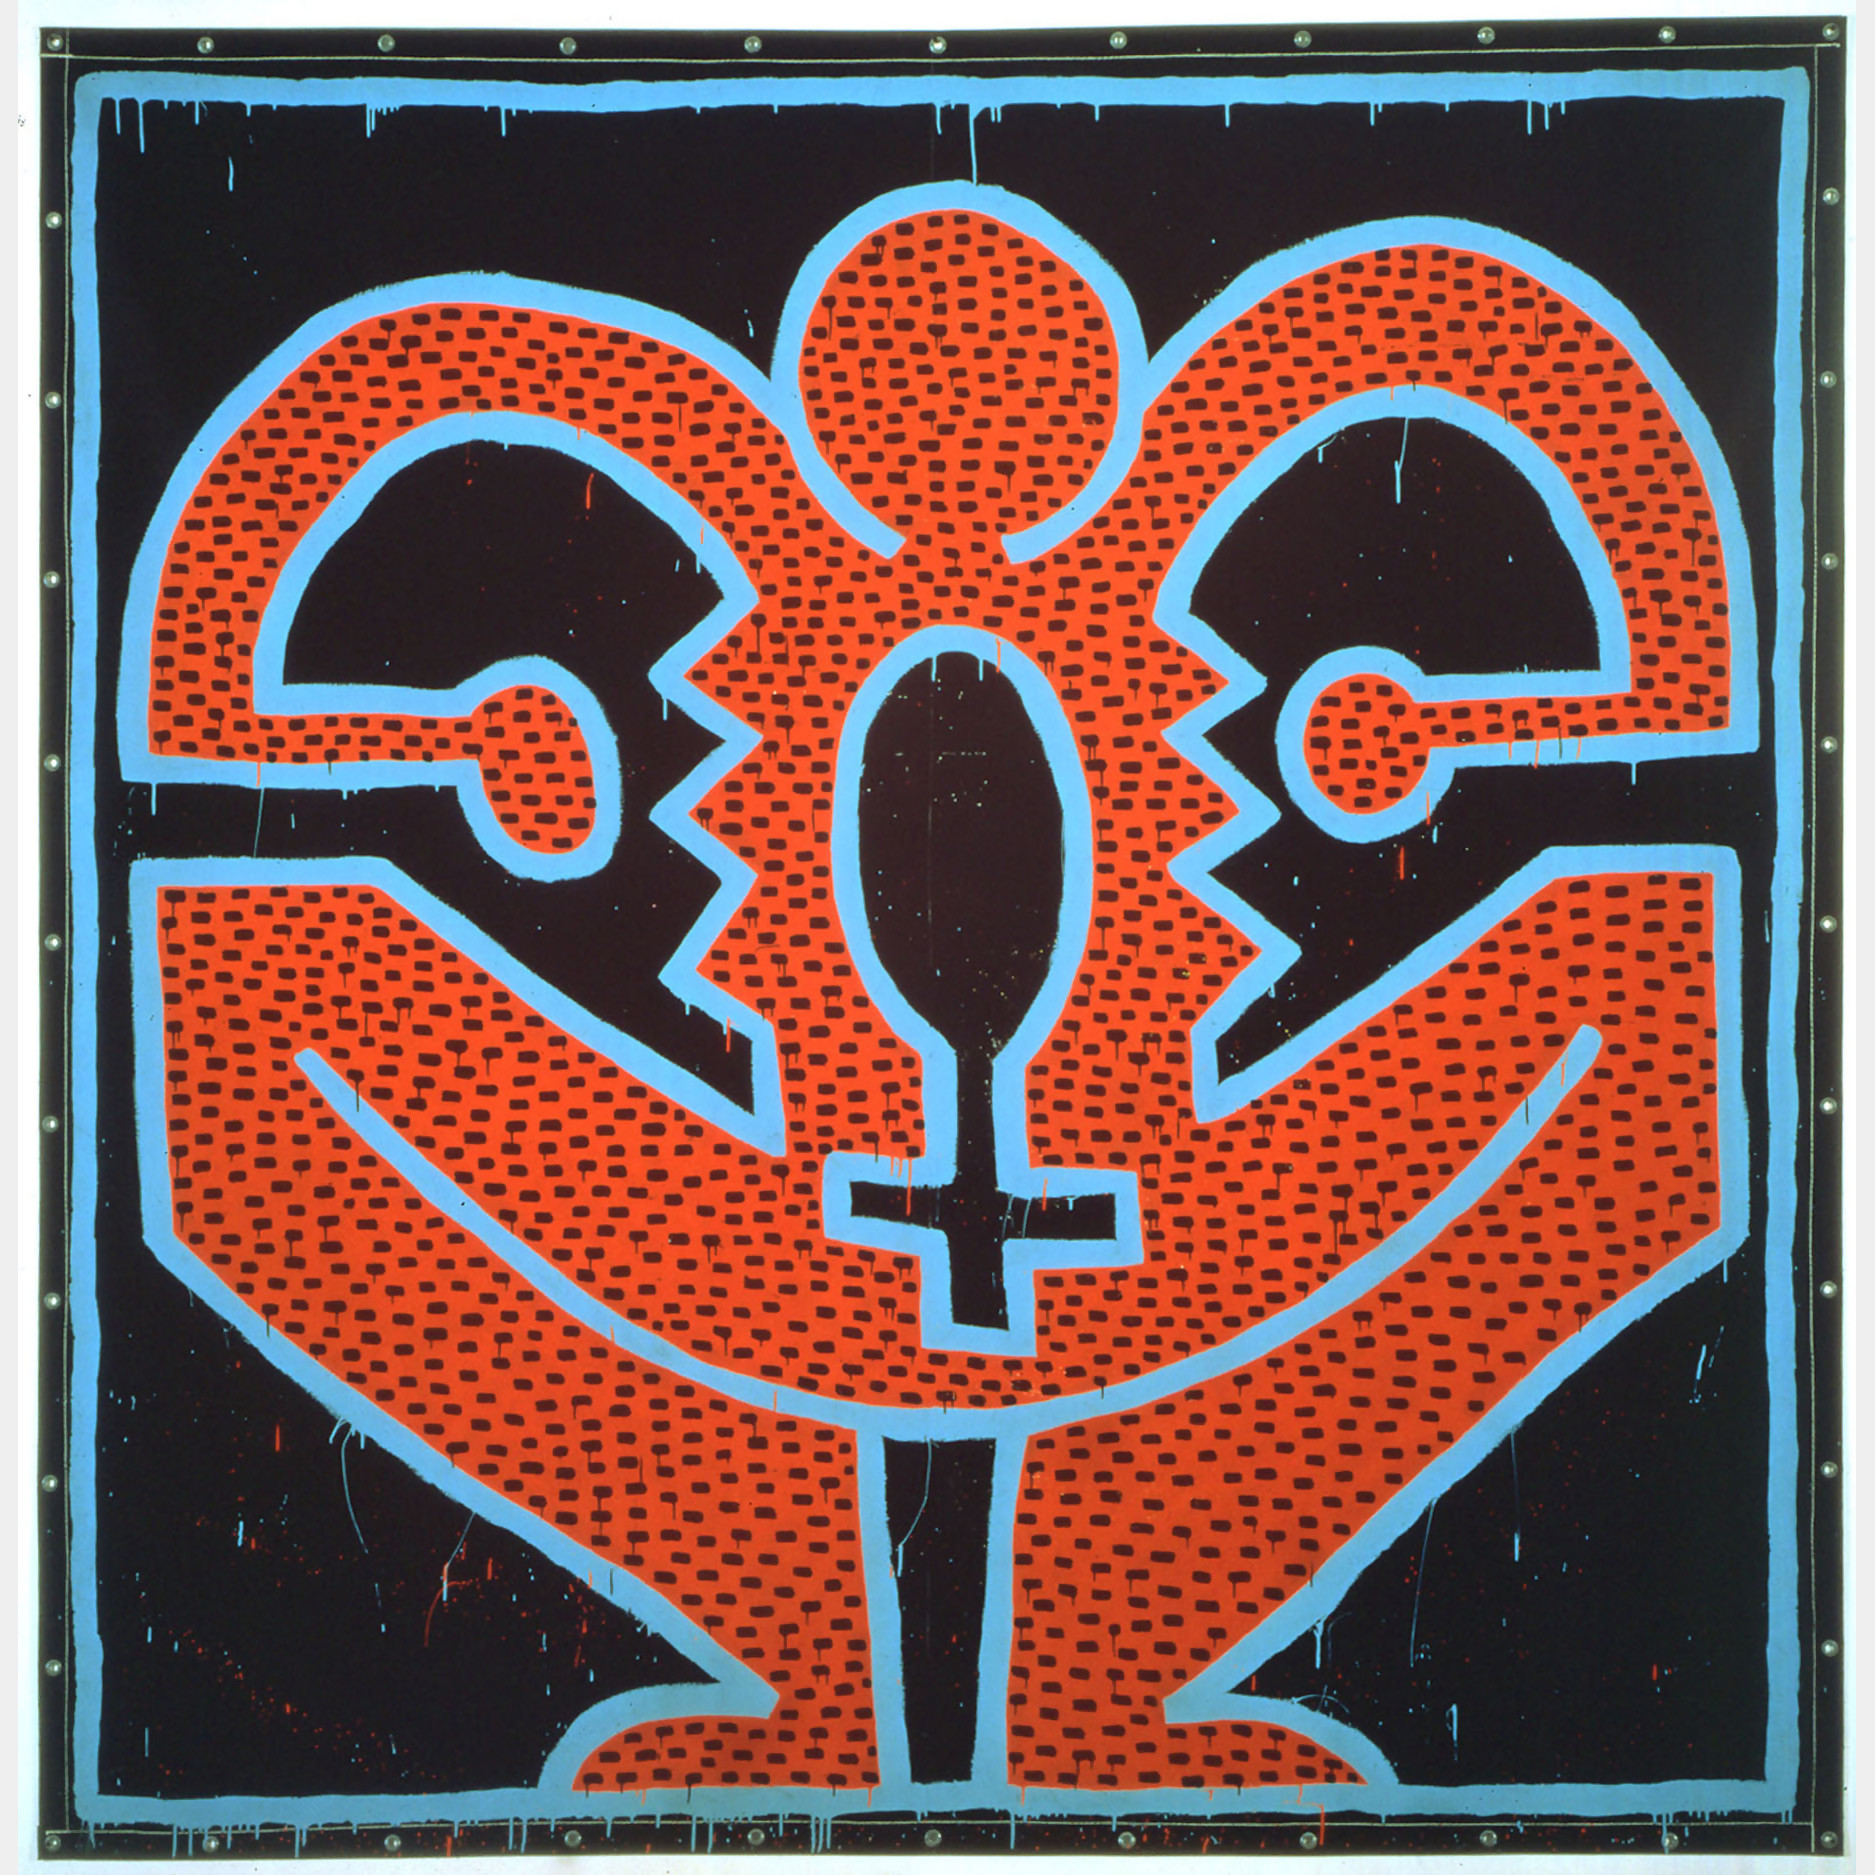 Keith Haring, Untitled, 1983 at Christie's Evening Sale